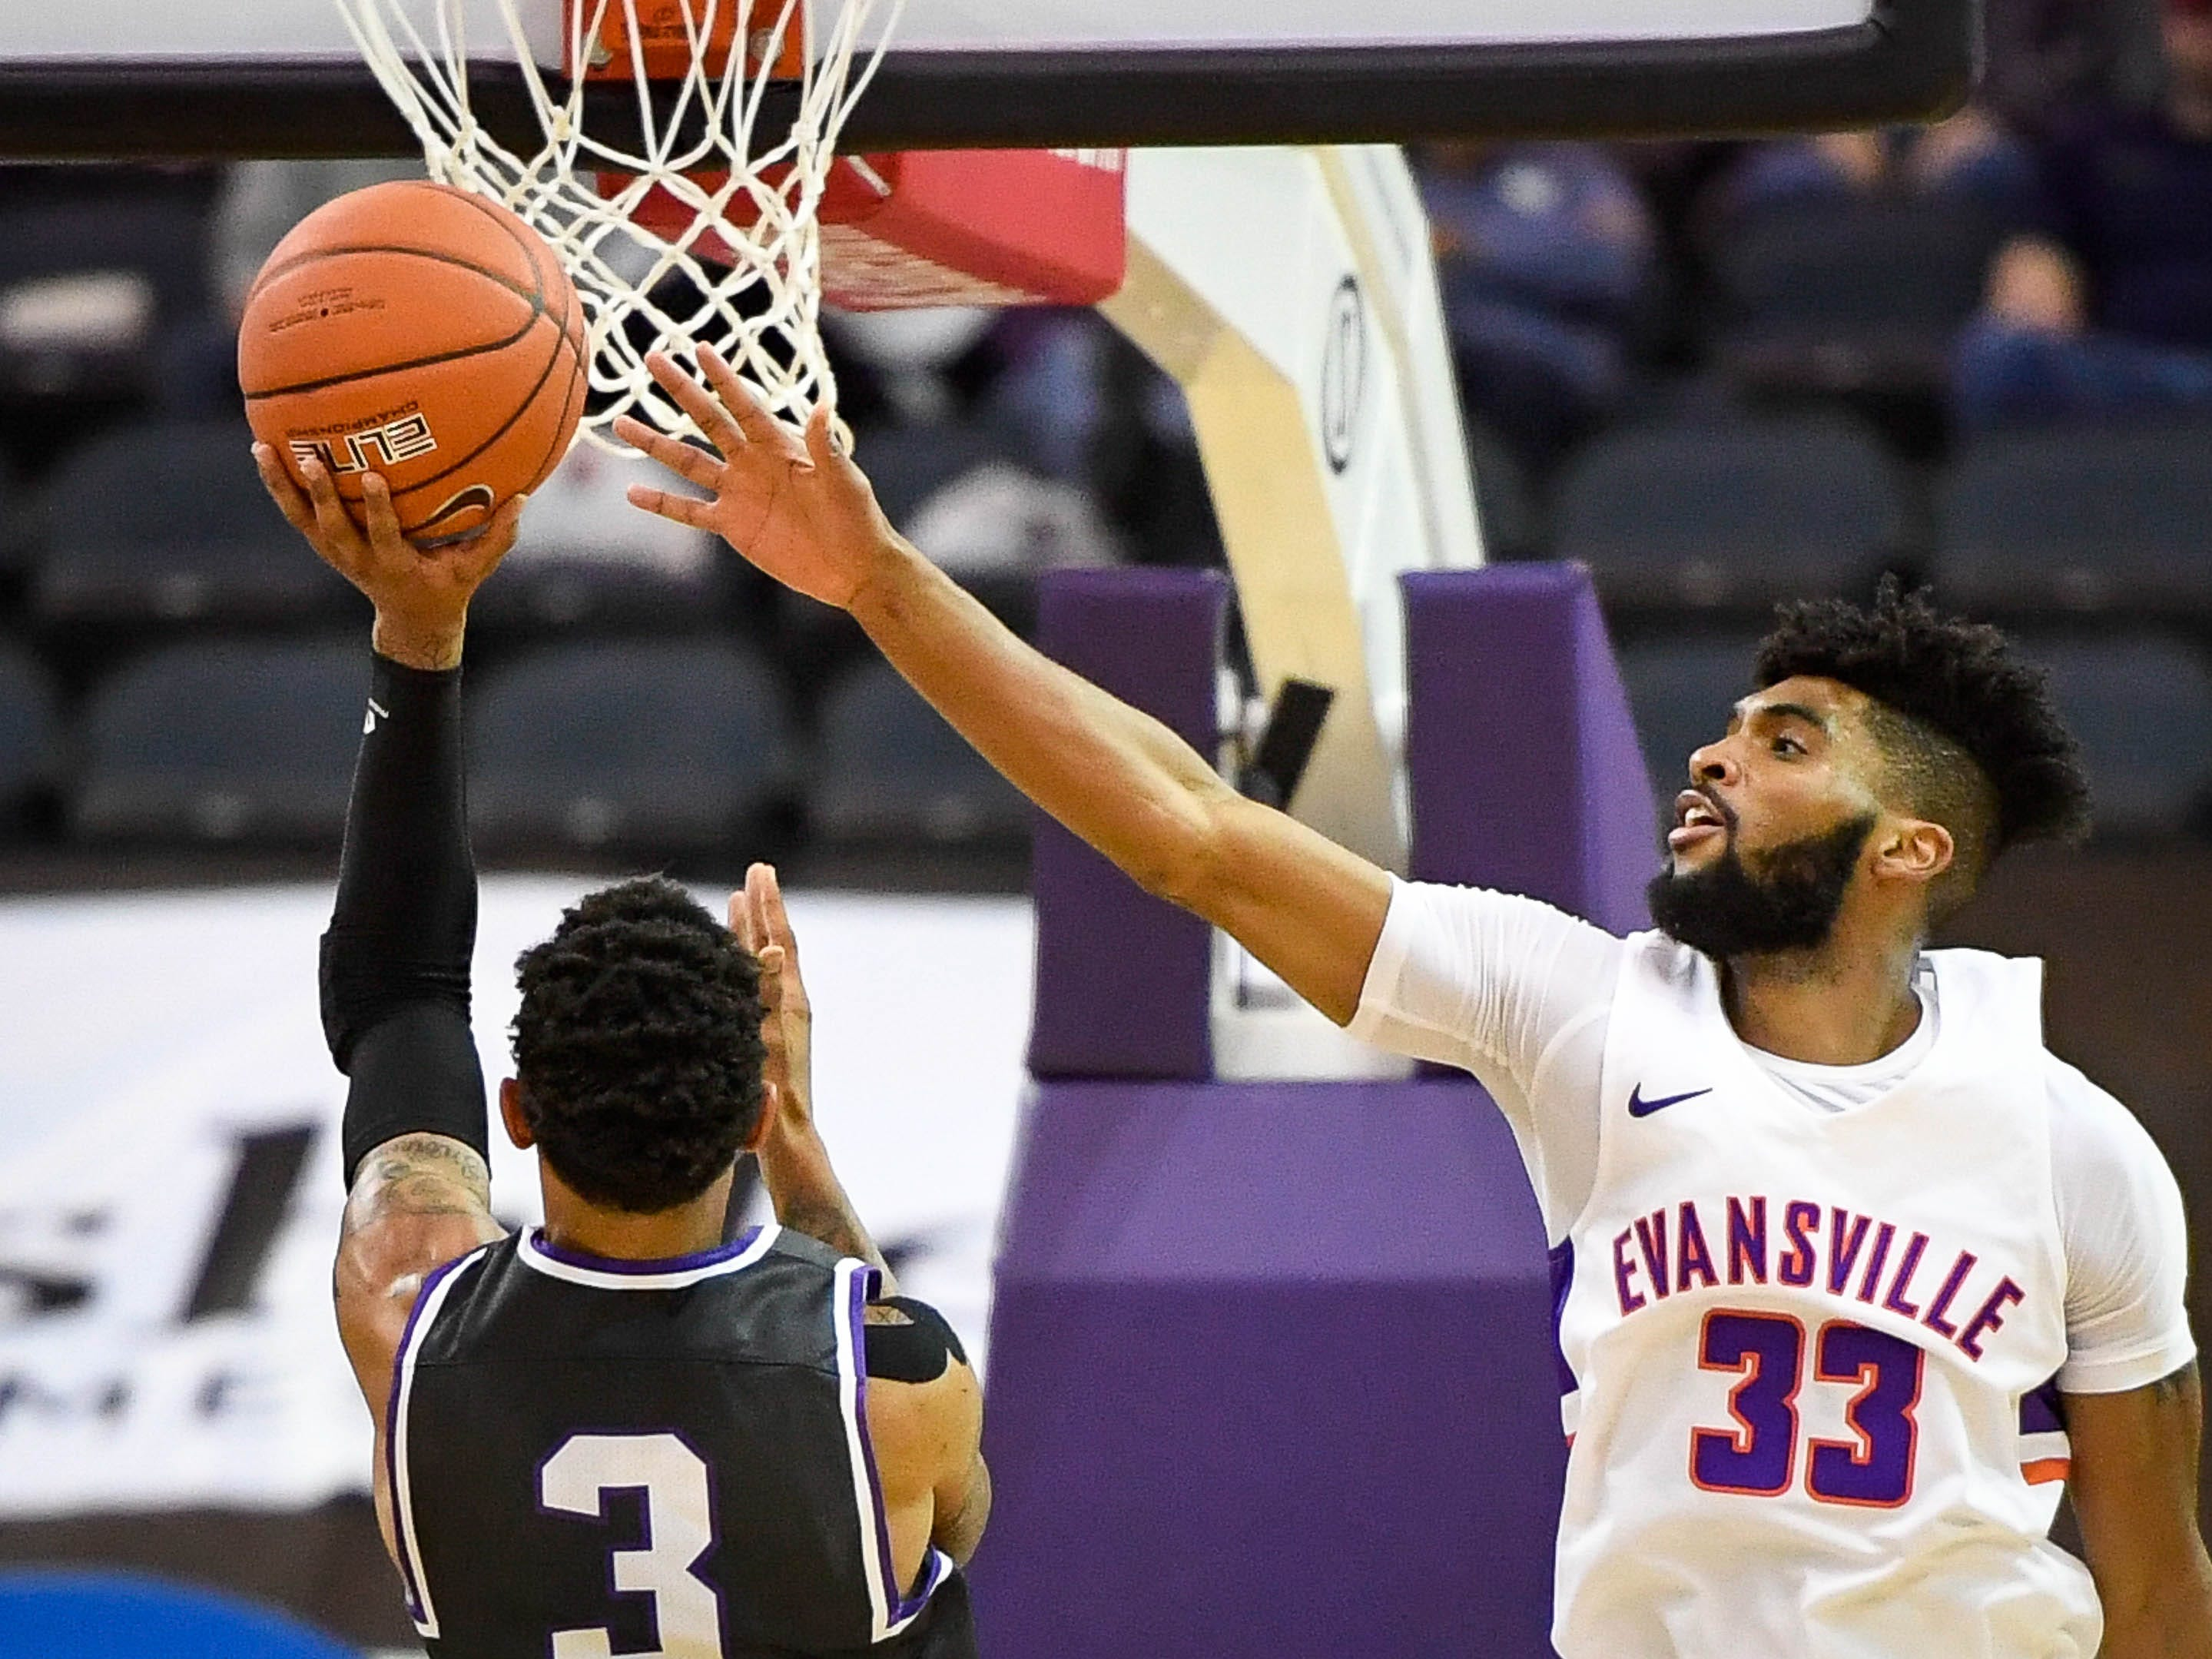 New Mexico Highlands' Gerad Davis (3) shoot against defense from University of Evansville's K.J. Riley (33) as the University of Evansville Purple Aces play the New Mexico Highlands Cowboys in a exhibition game at the Ford Center Saturday, November 3, 2018.